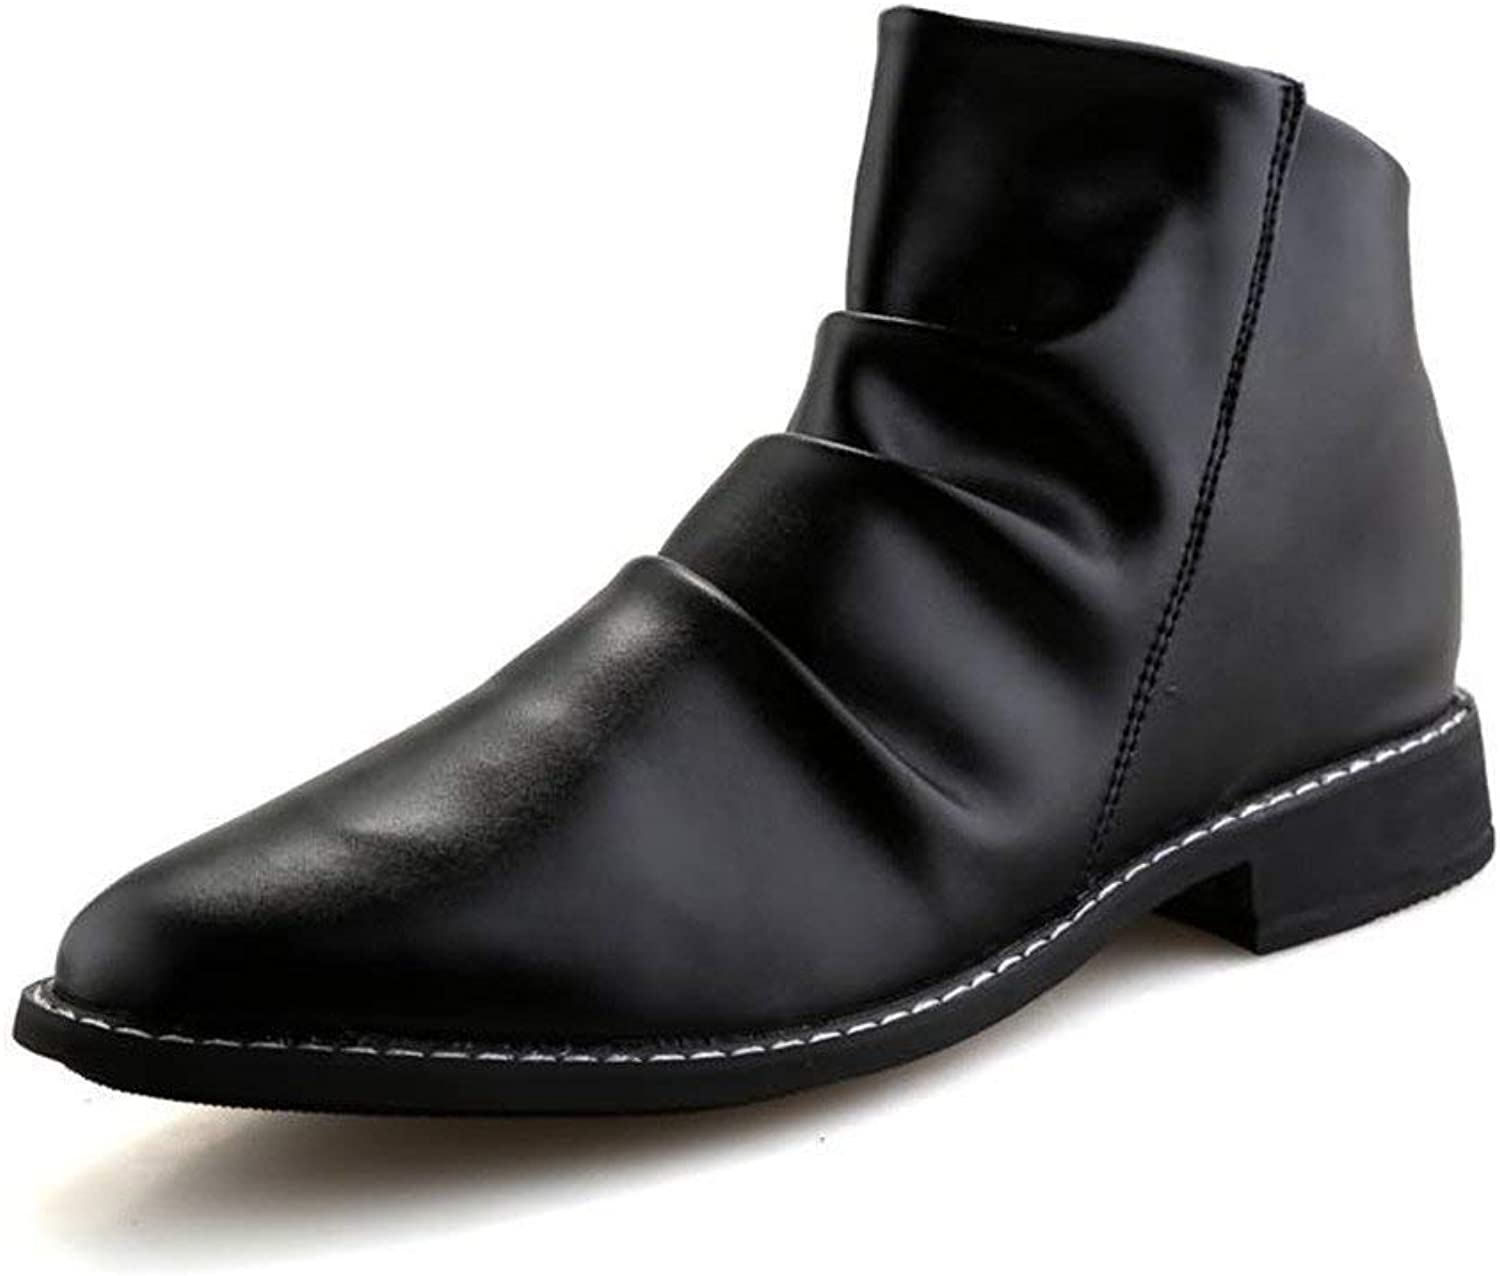 Fuxitoggo Men's Ankle Boots Round Toe Block Heel Pull On Slouch Vamp Oxfords shoes (color  Black, Size  41 EU) (color   Black, Size   44 EU)